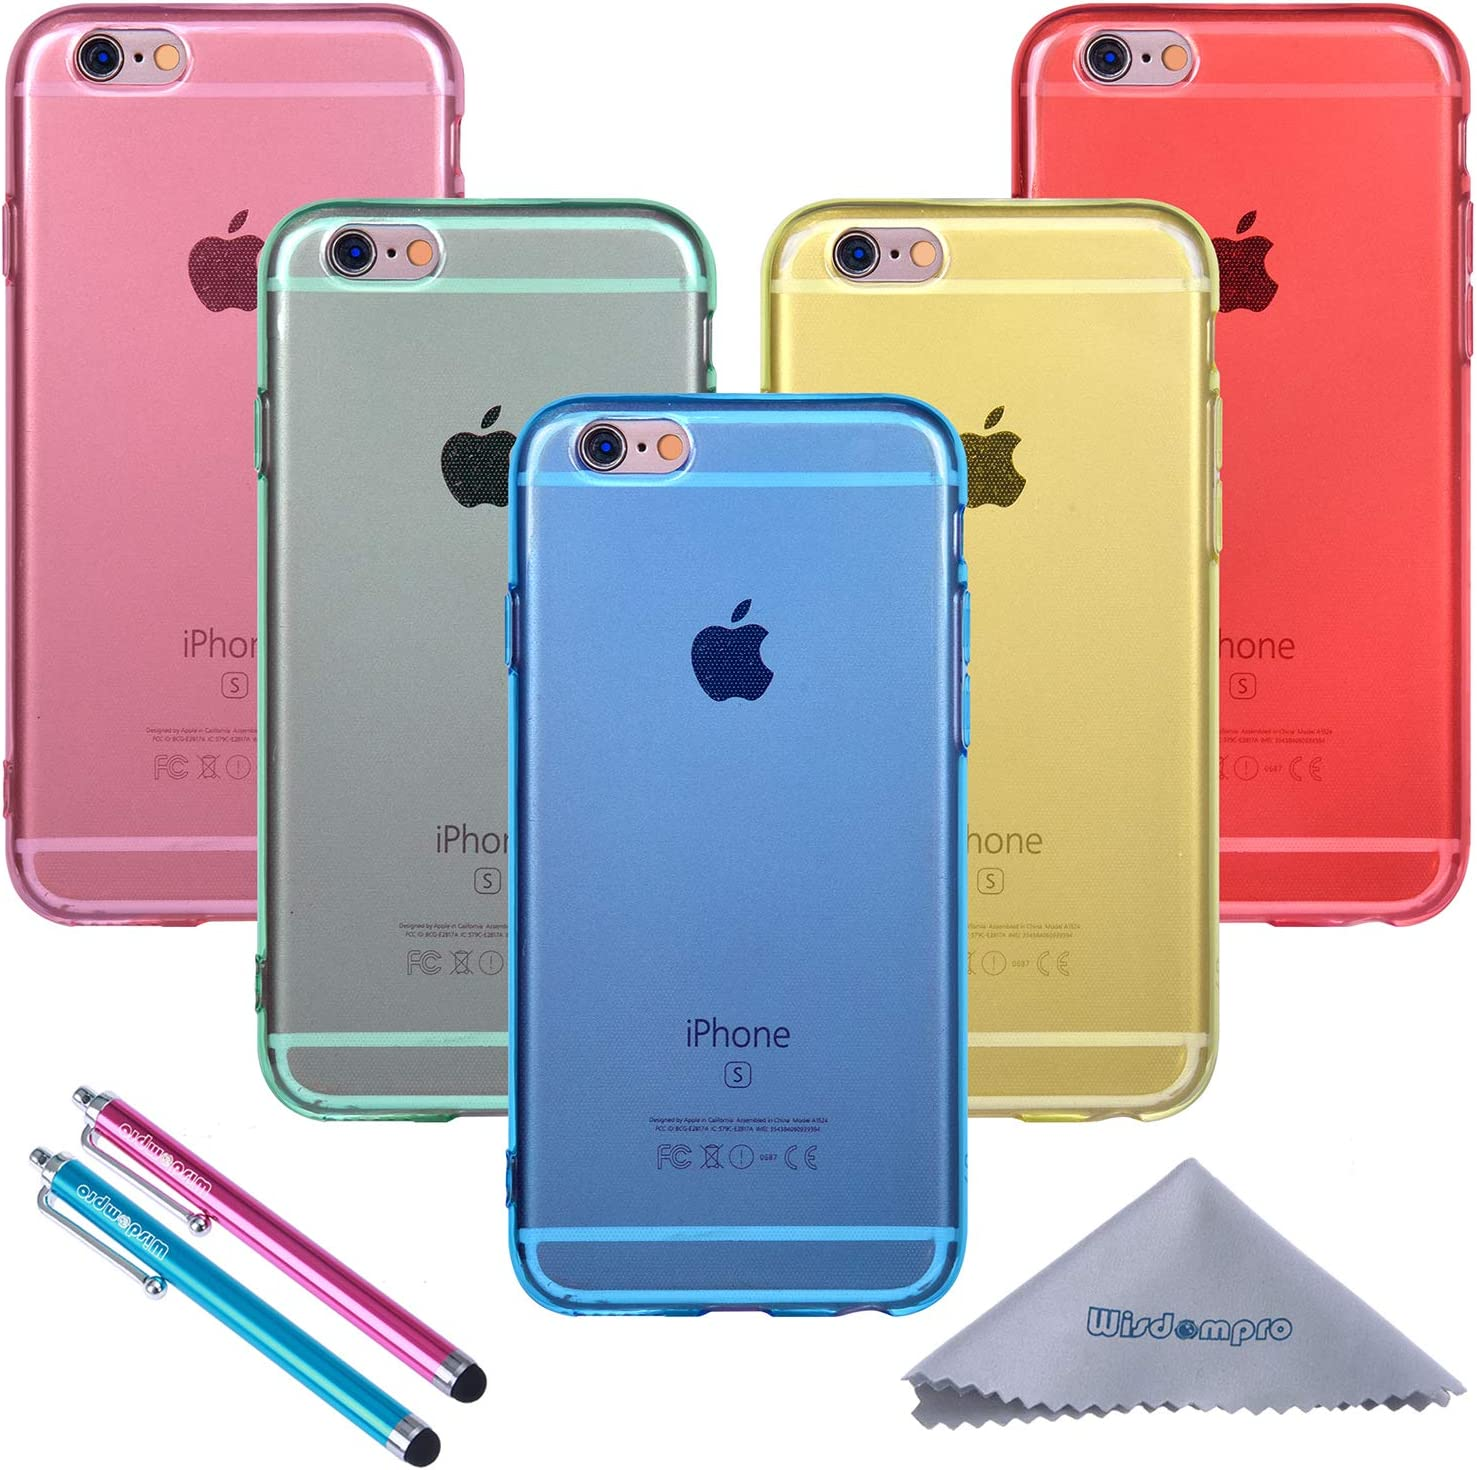 Wisdompro iPhone 6 Case, iPhone 6s Case, Bundle of 5 Pack Extra Thin Slim Jelly Soft TPU Gel Protective Case Cover for Apple 4.7 Inch iPhone 6 6s (Blue, Aqua Blue, Hot Pink, Yellow, Red)-Clear